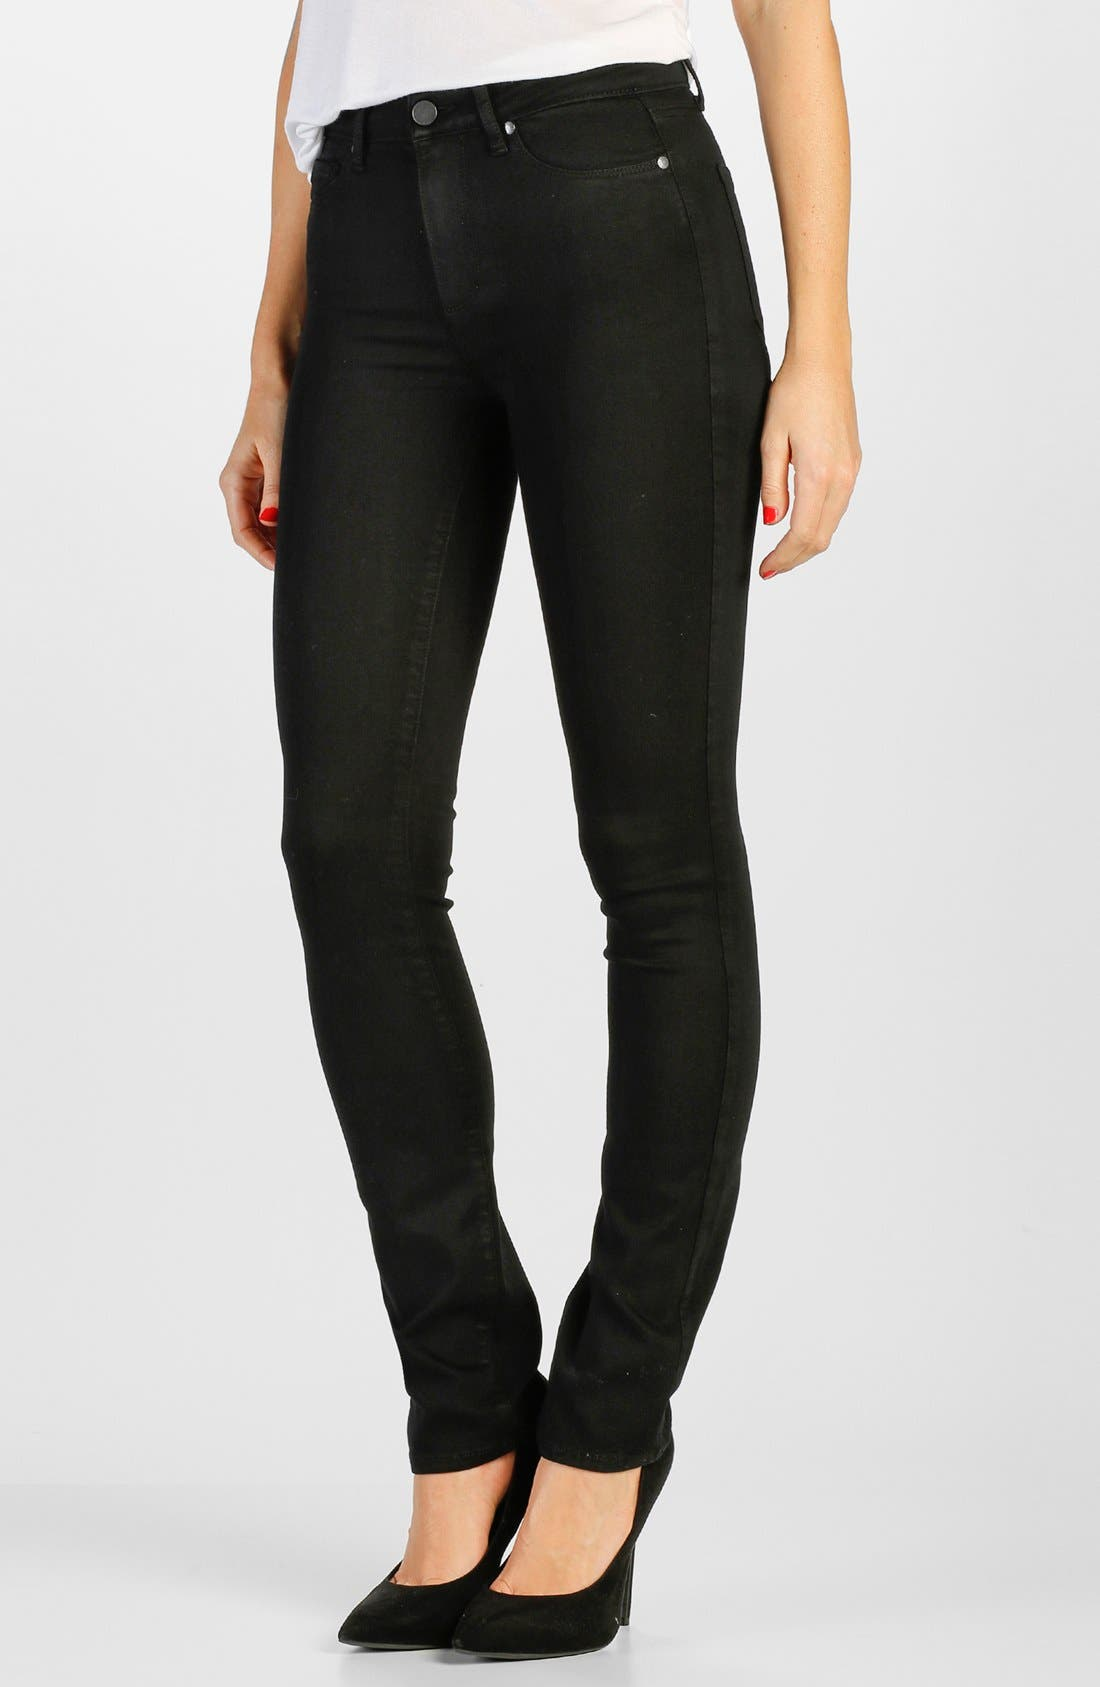 Main Image - PAIGE Transcend - Hoxton High Waist Straight Leg Jeans (Black Shadow)